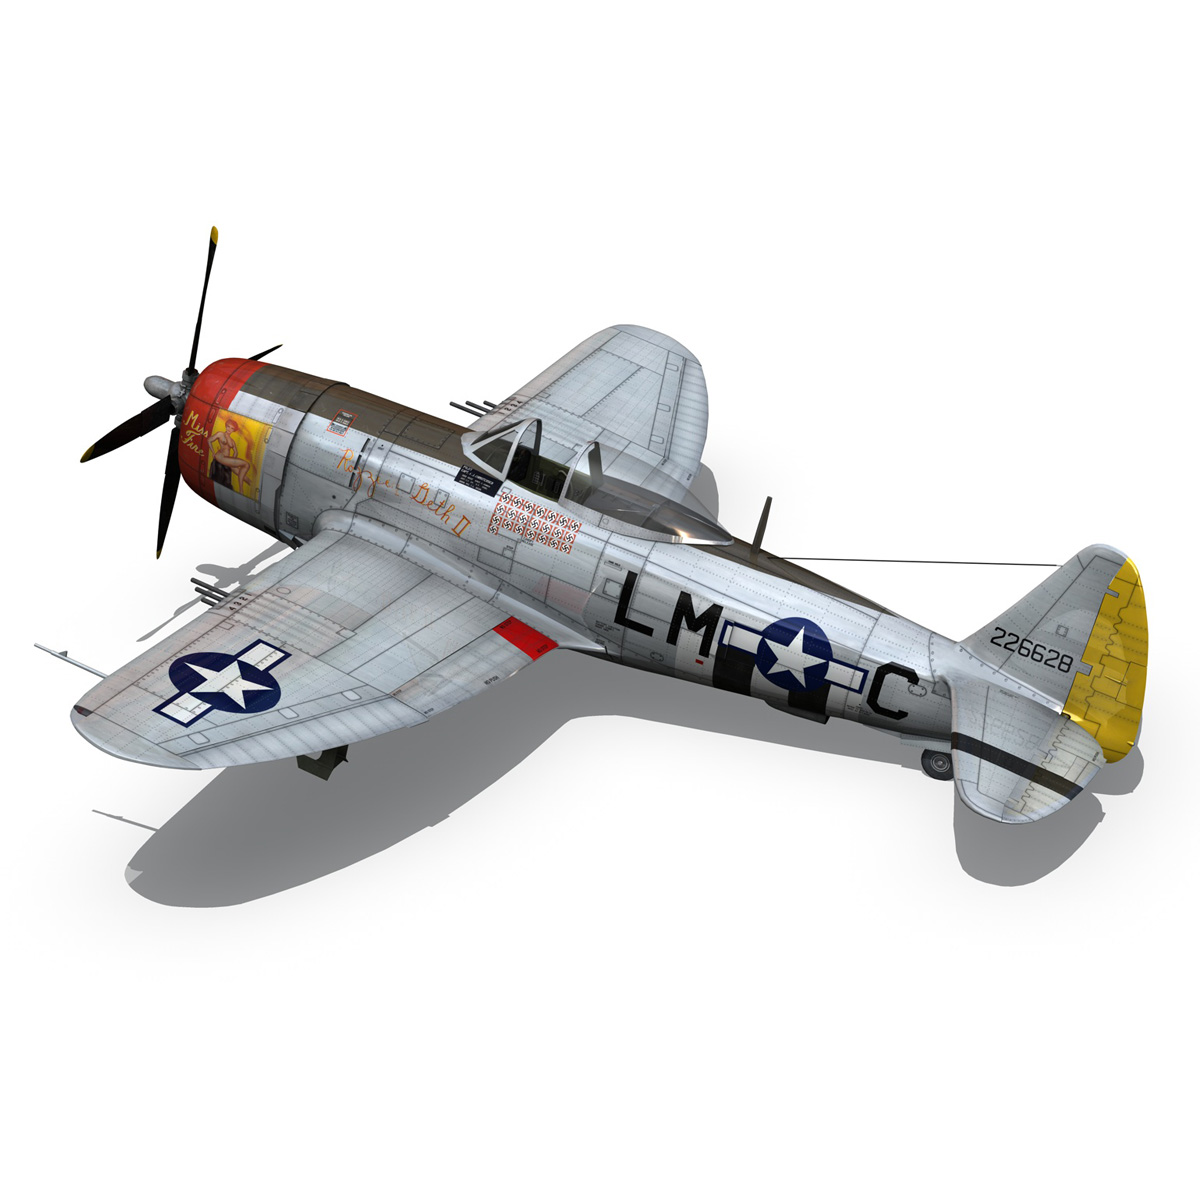 Republic P-47D Thunderbolt - Rozzie Geth II 3d model  279778